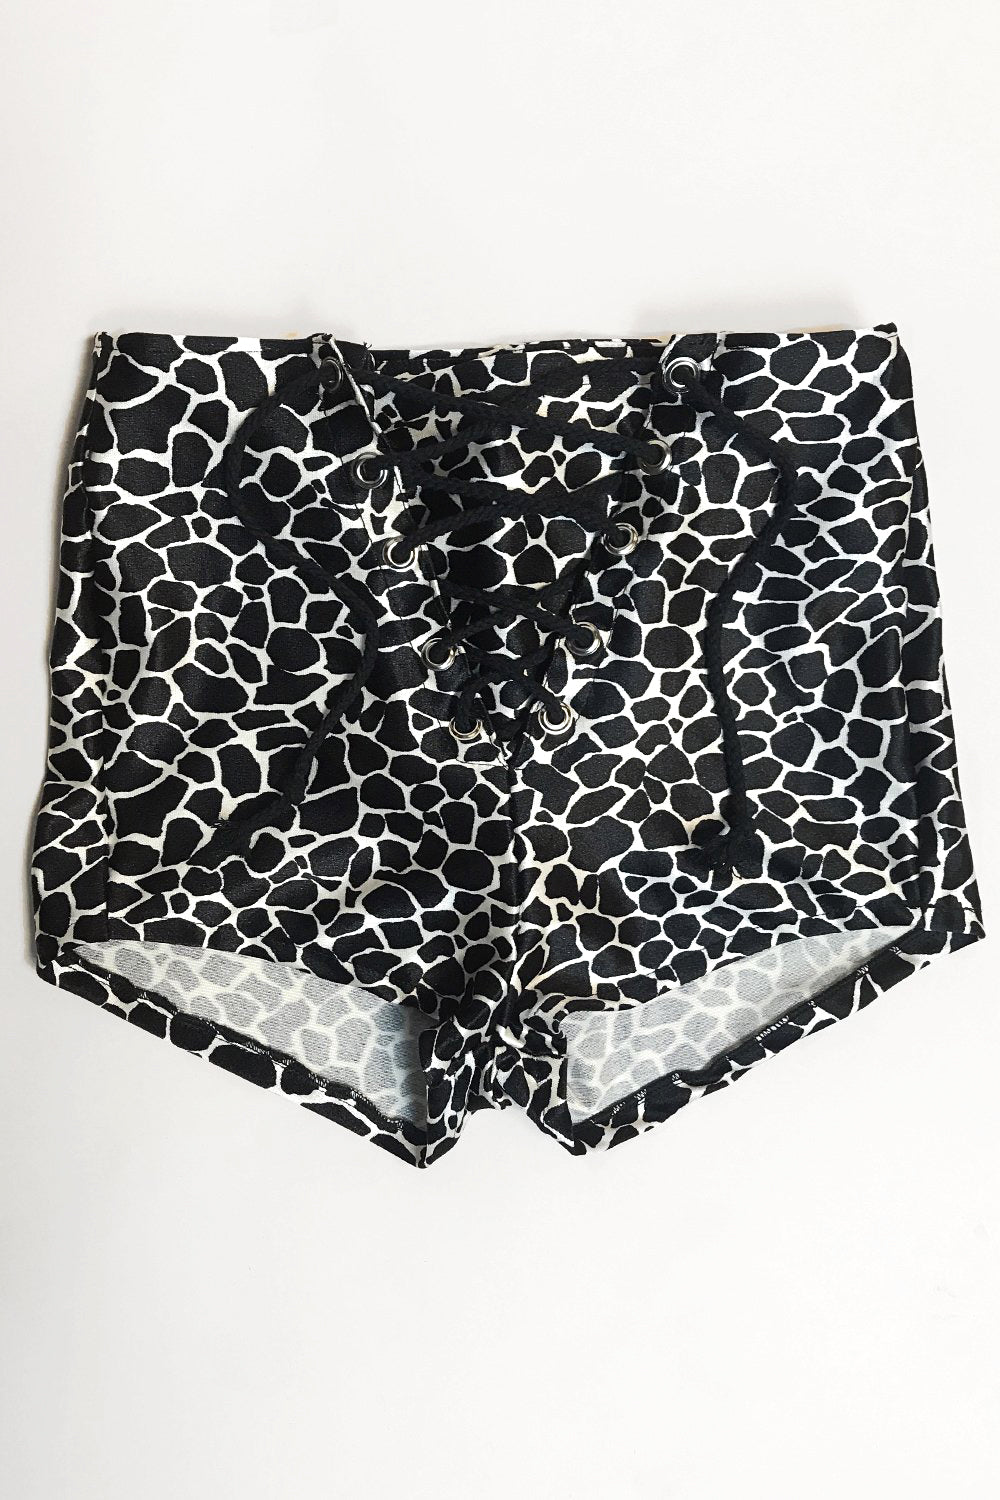 -In Stock Now- Wild Animal Nylon Grommet Shorts・Size XS, bottoms, BAD VIBES, BACKBITE